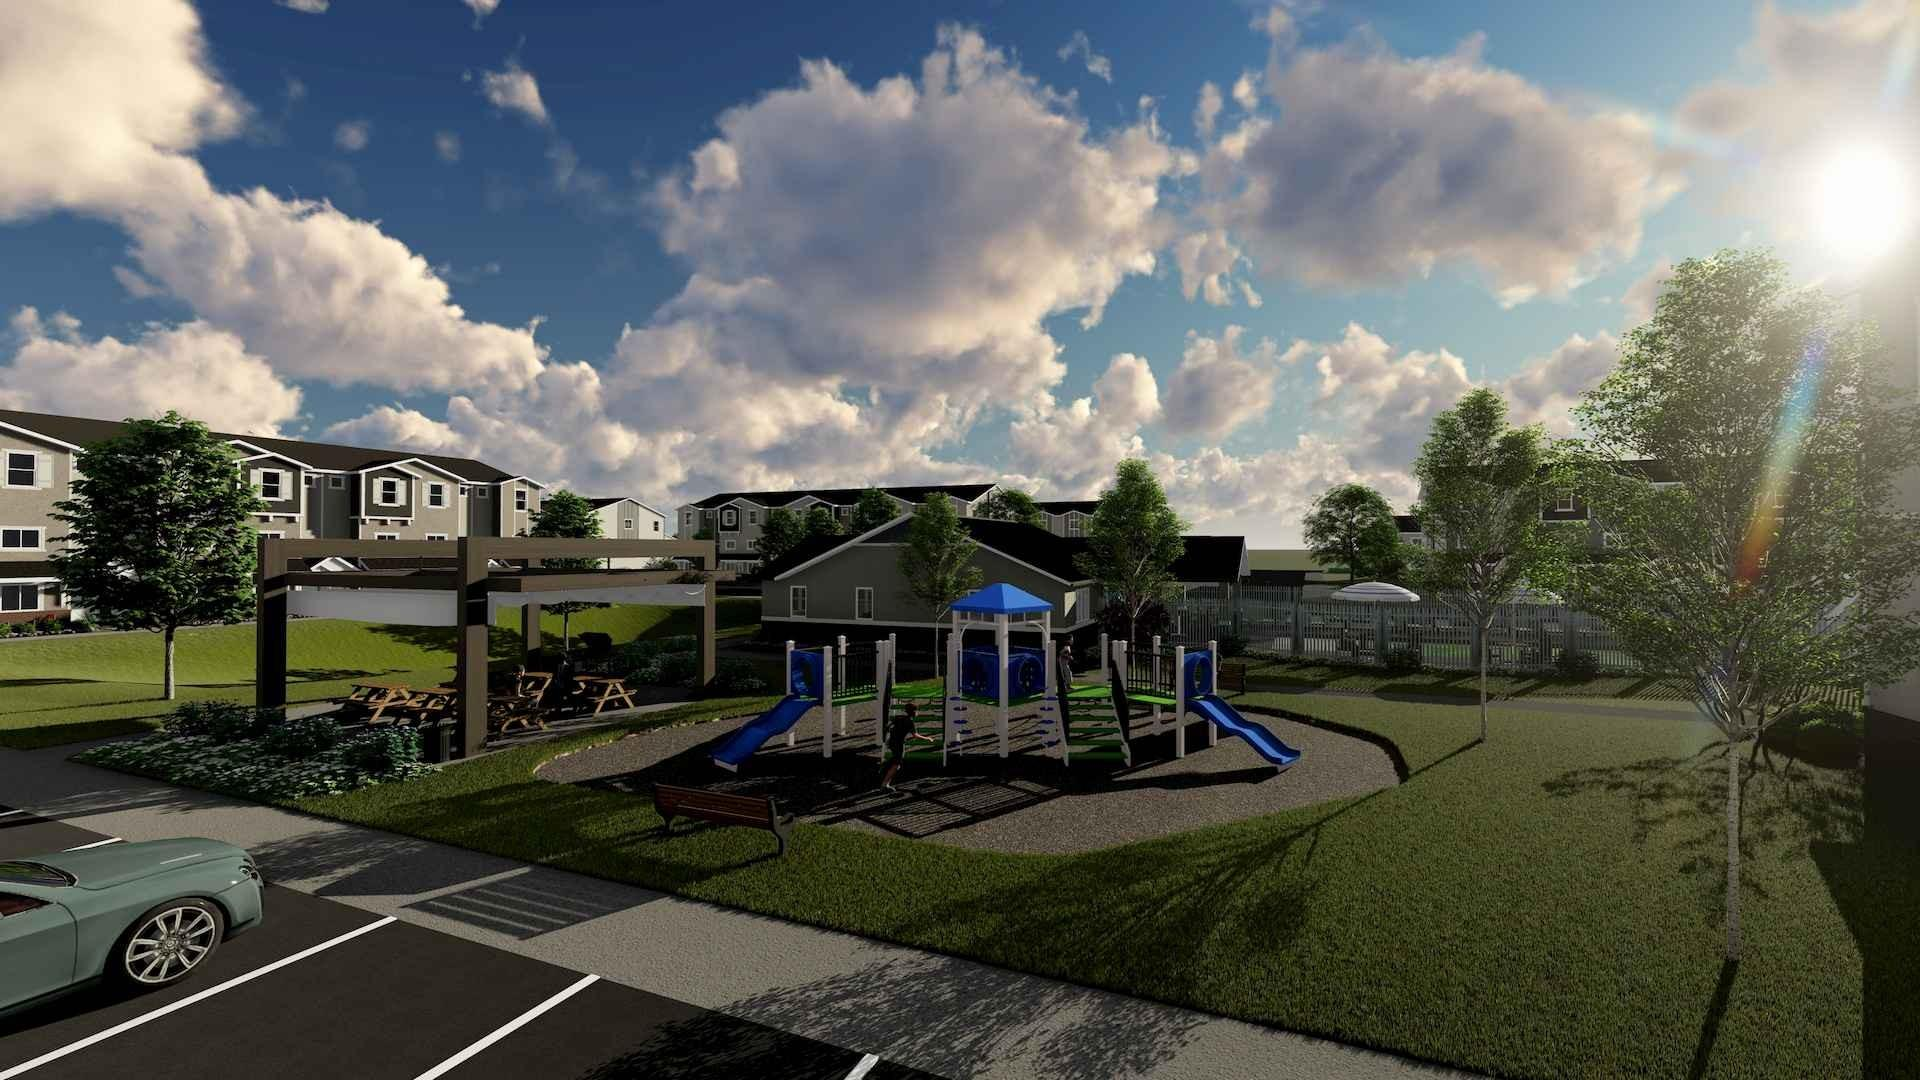 FIG multifamily investments include amenities